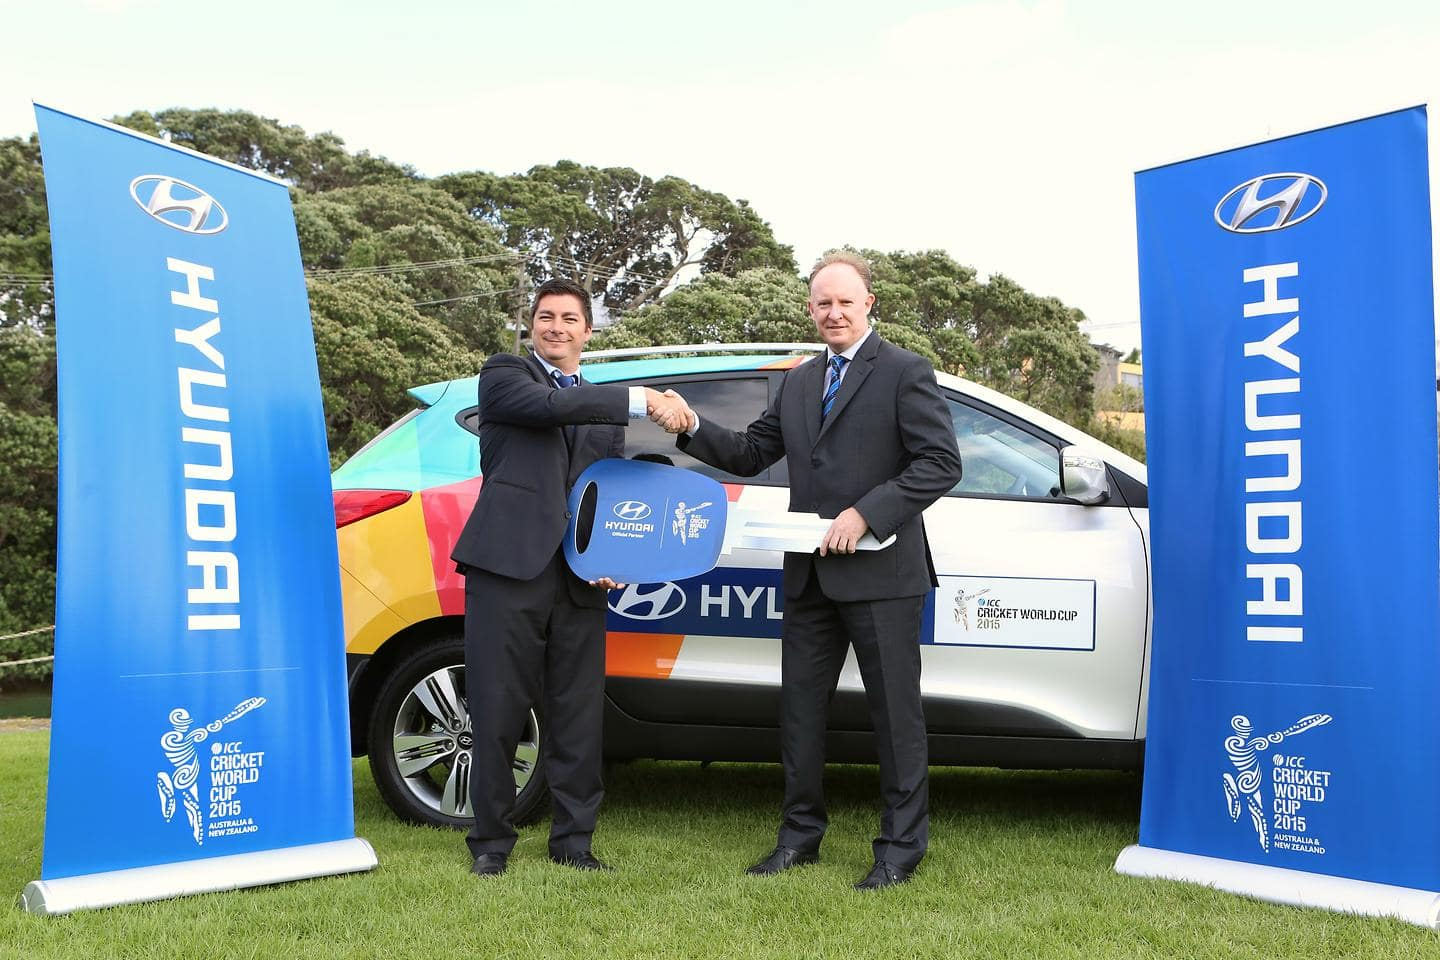 A Winning Wicket Hyundai New Zealand Supplies Official Fleet of 94 Vehicles to ICC Cricket World Cup 2015